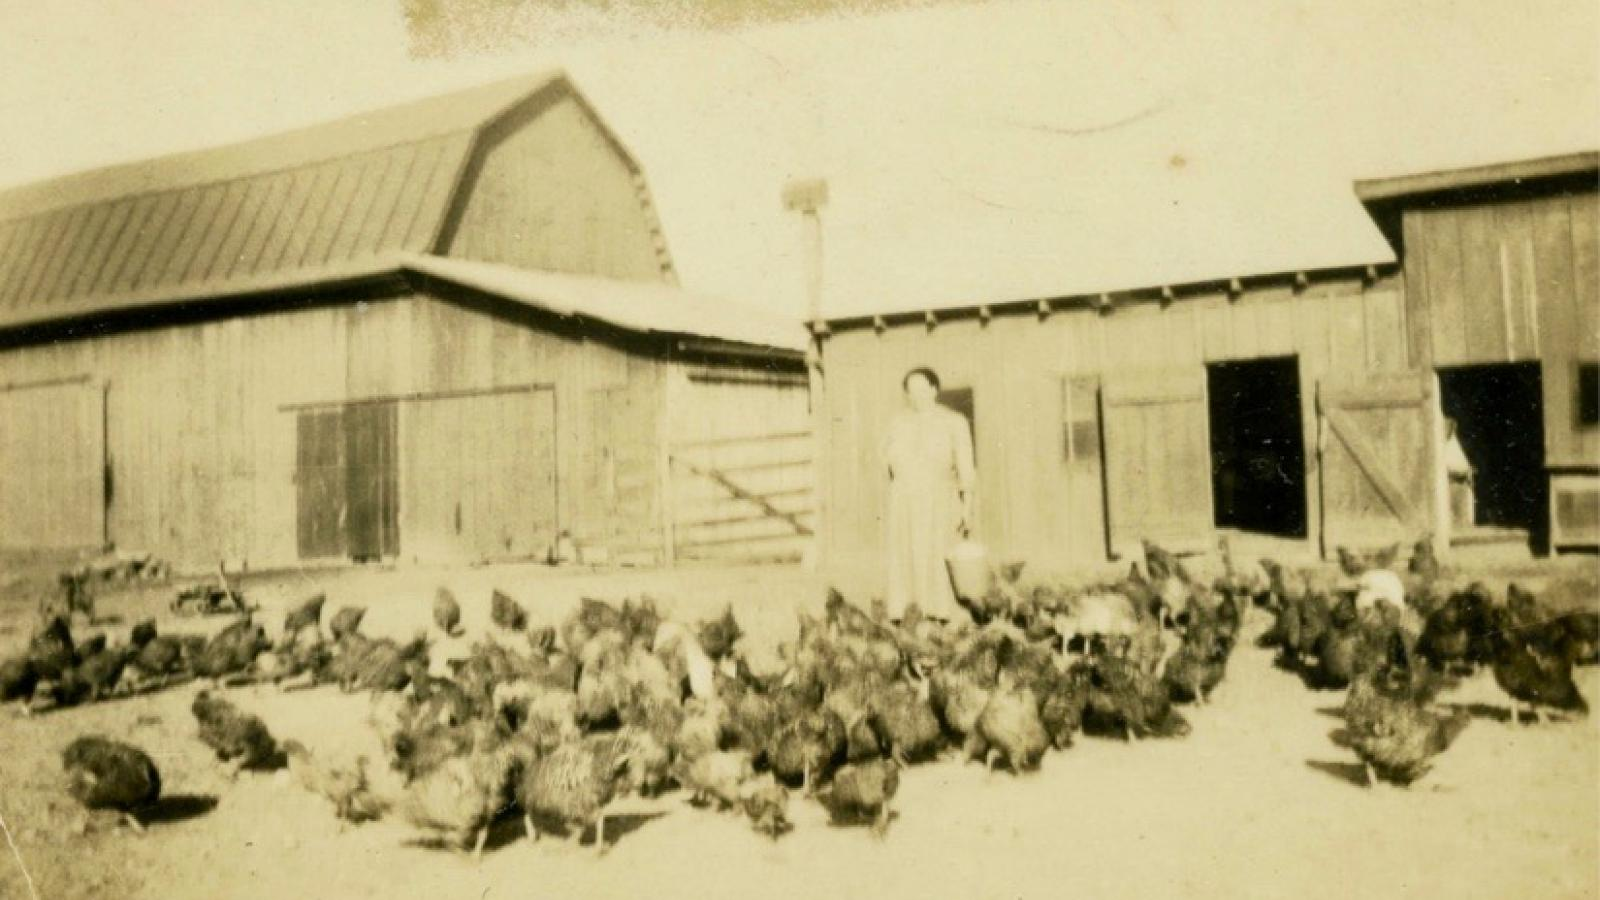 Lenora Hammond Lapp standing amongst the poultry she raised in Ross County, Ohio.